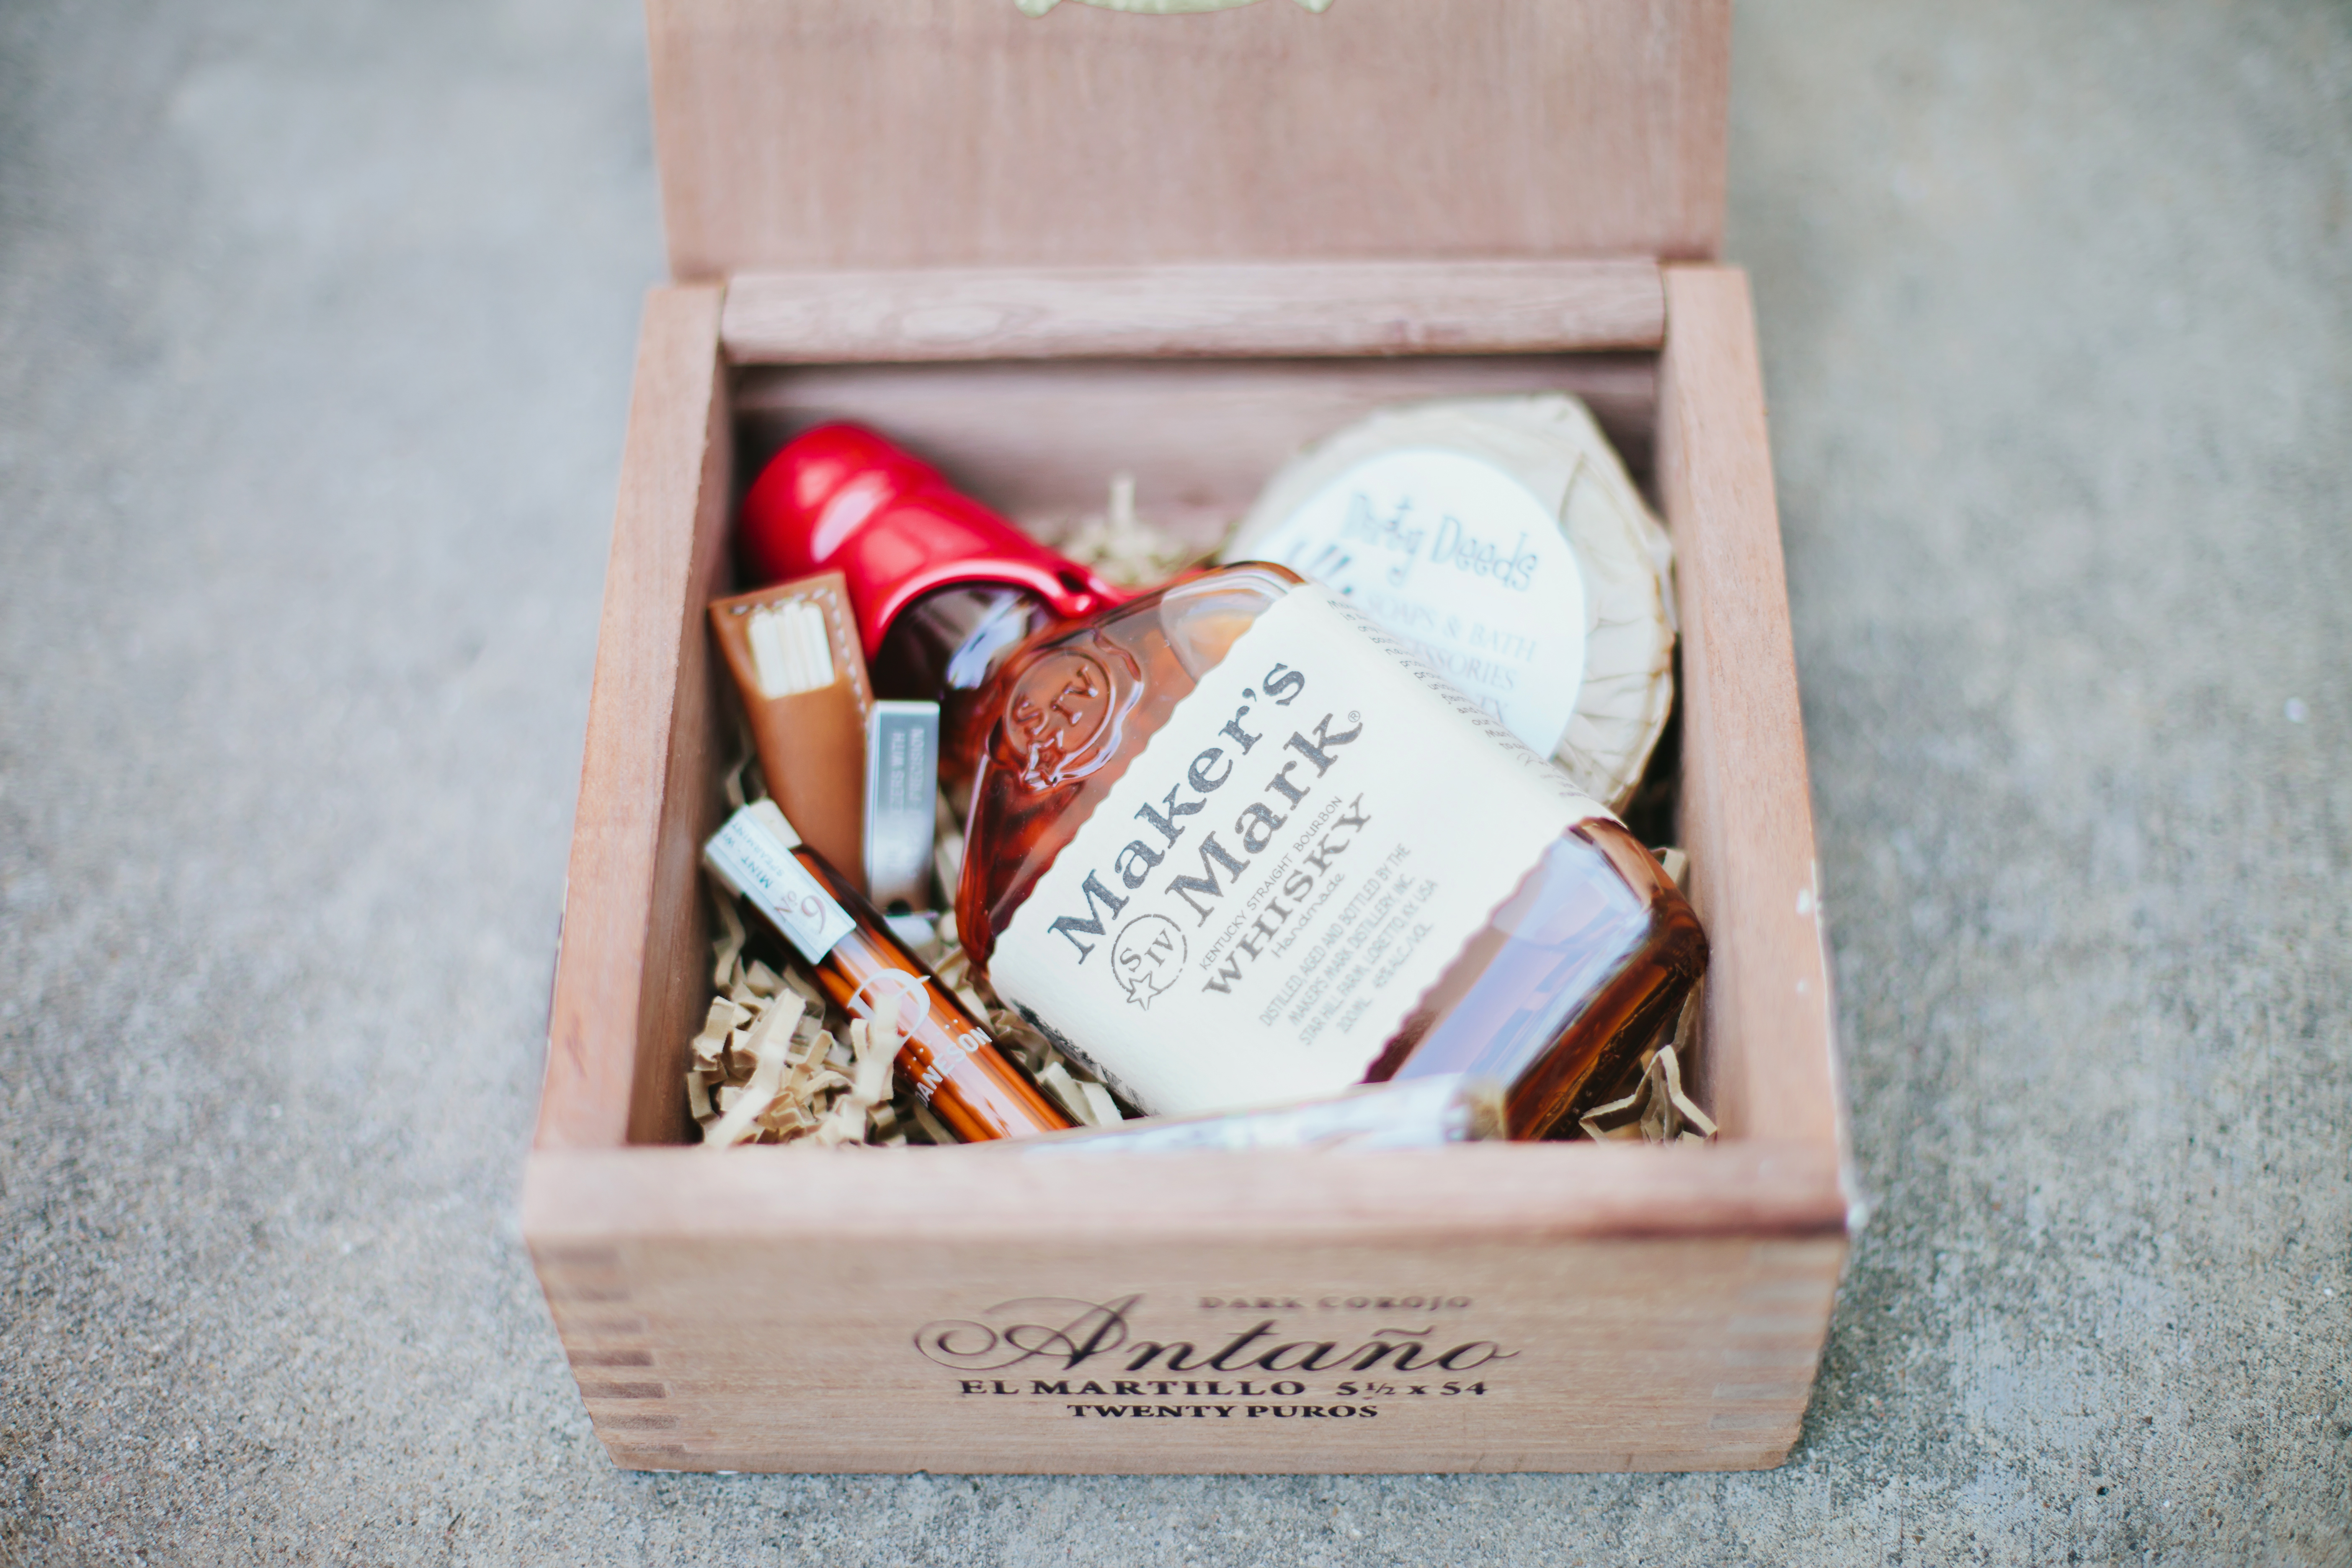 cigar box gifts Archives - Grit + Gold Event Design | Dallas ...